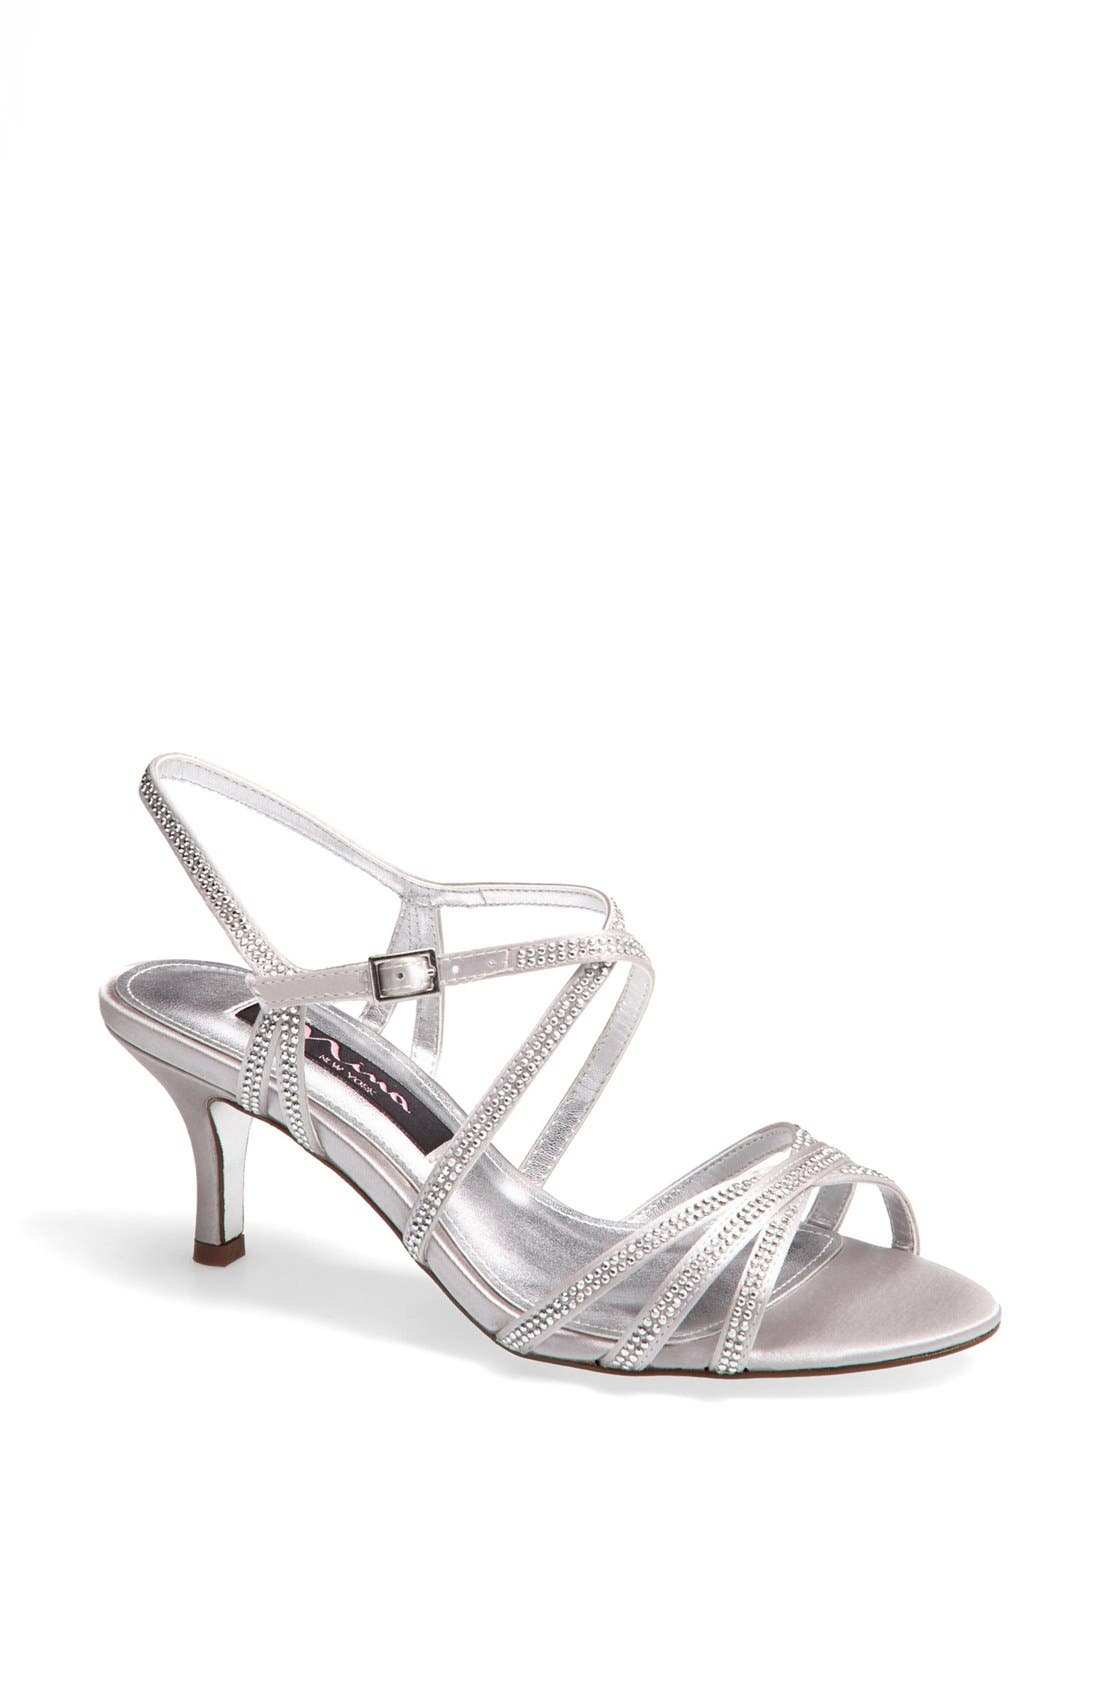 Alternate Image 1 Selected - Nina 'Caprese' Sandal